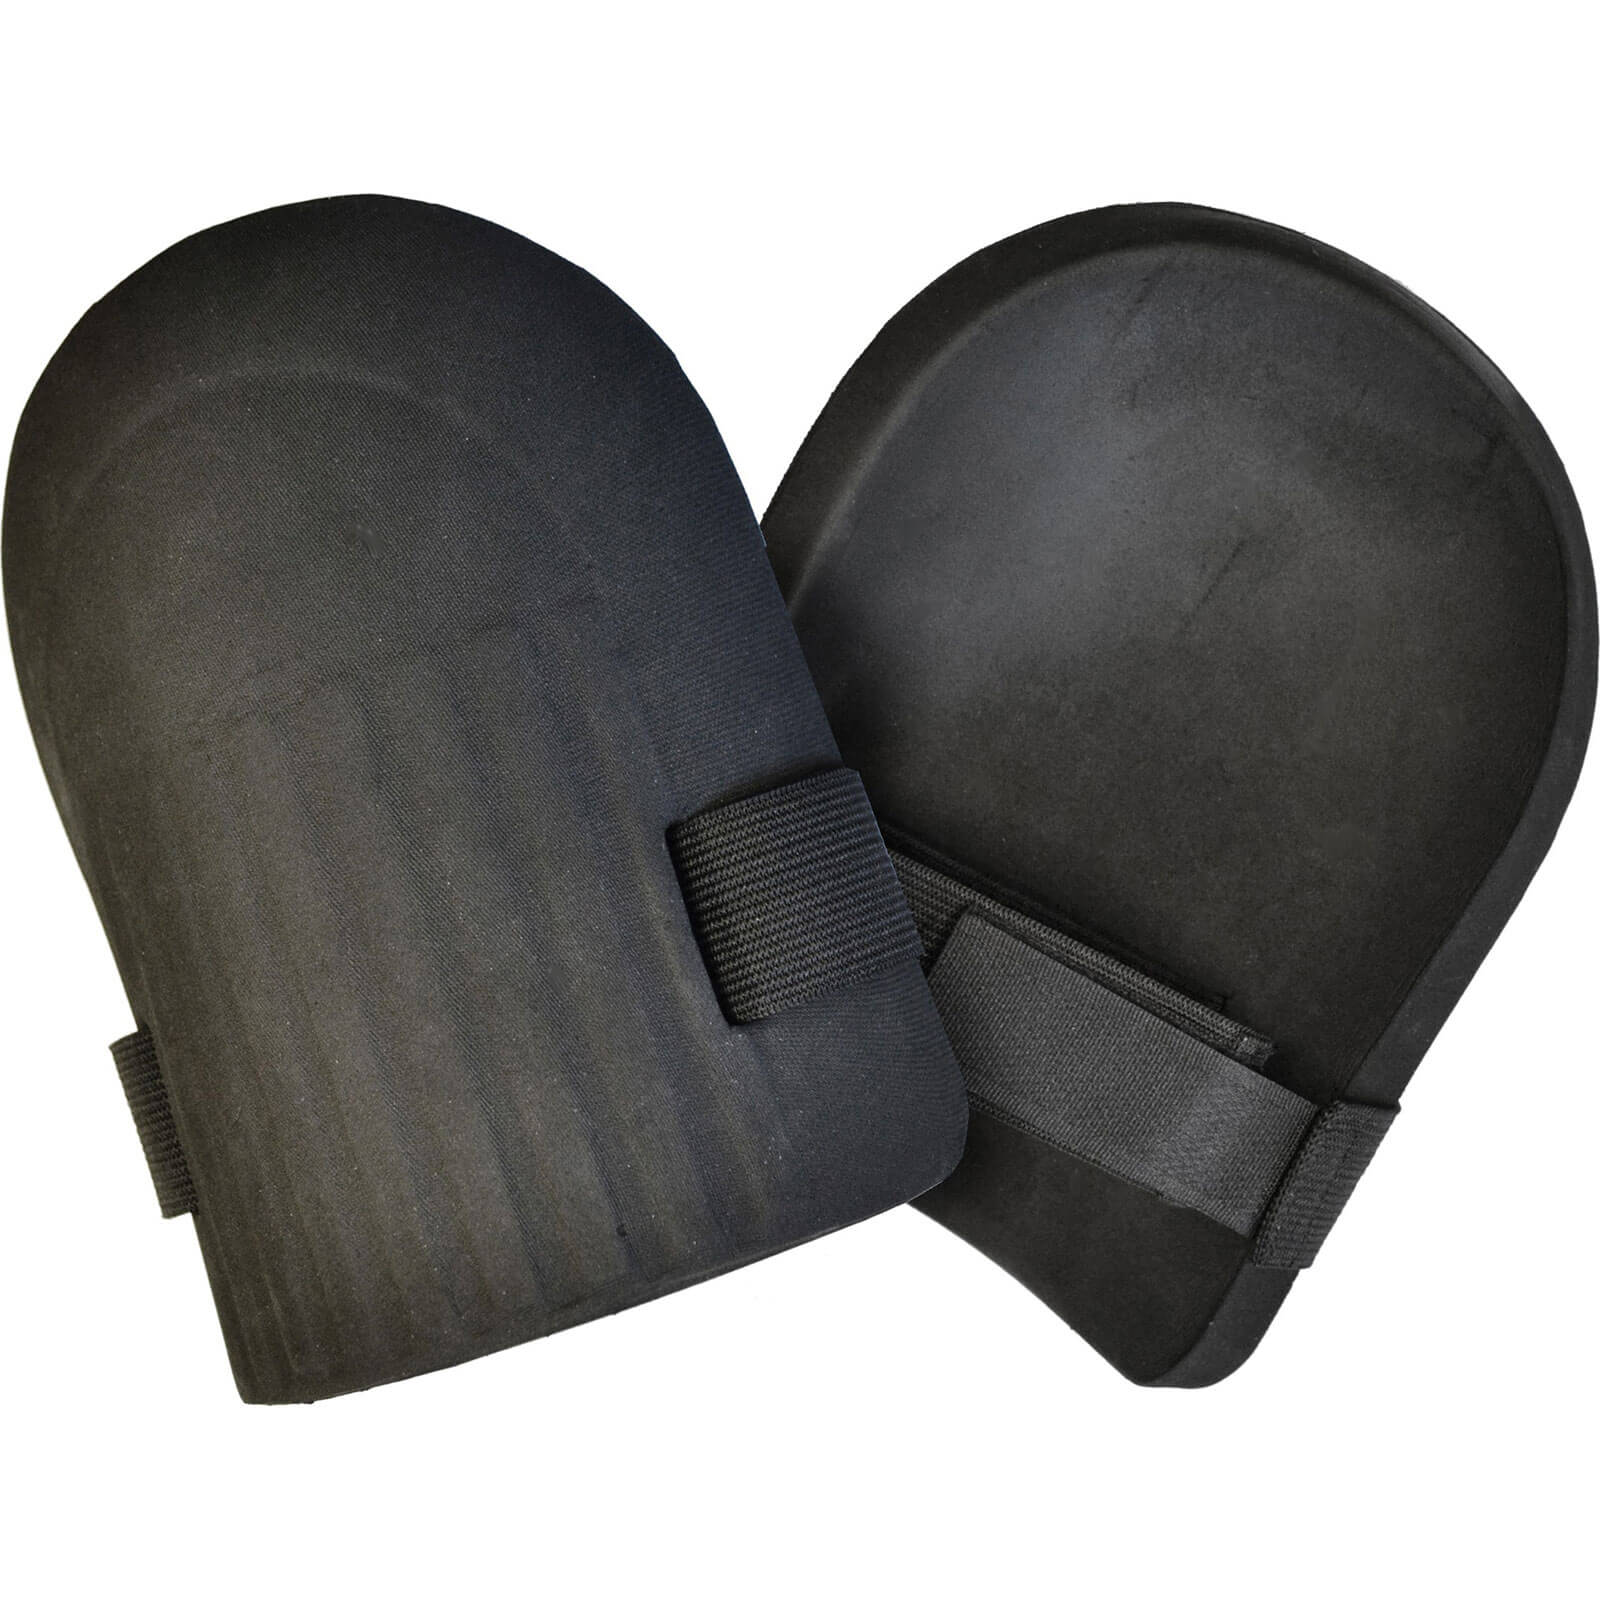 Image of Scan Foam Knee Pads